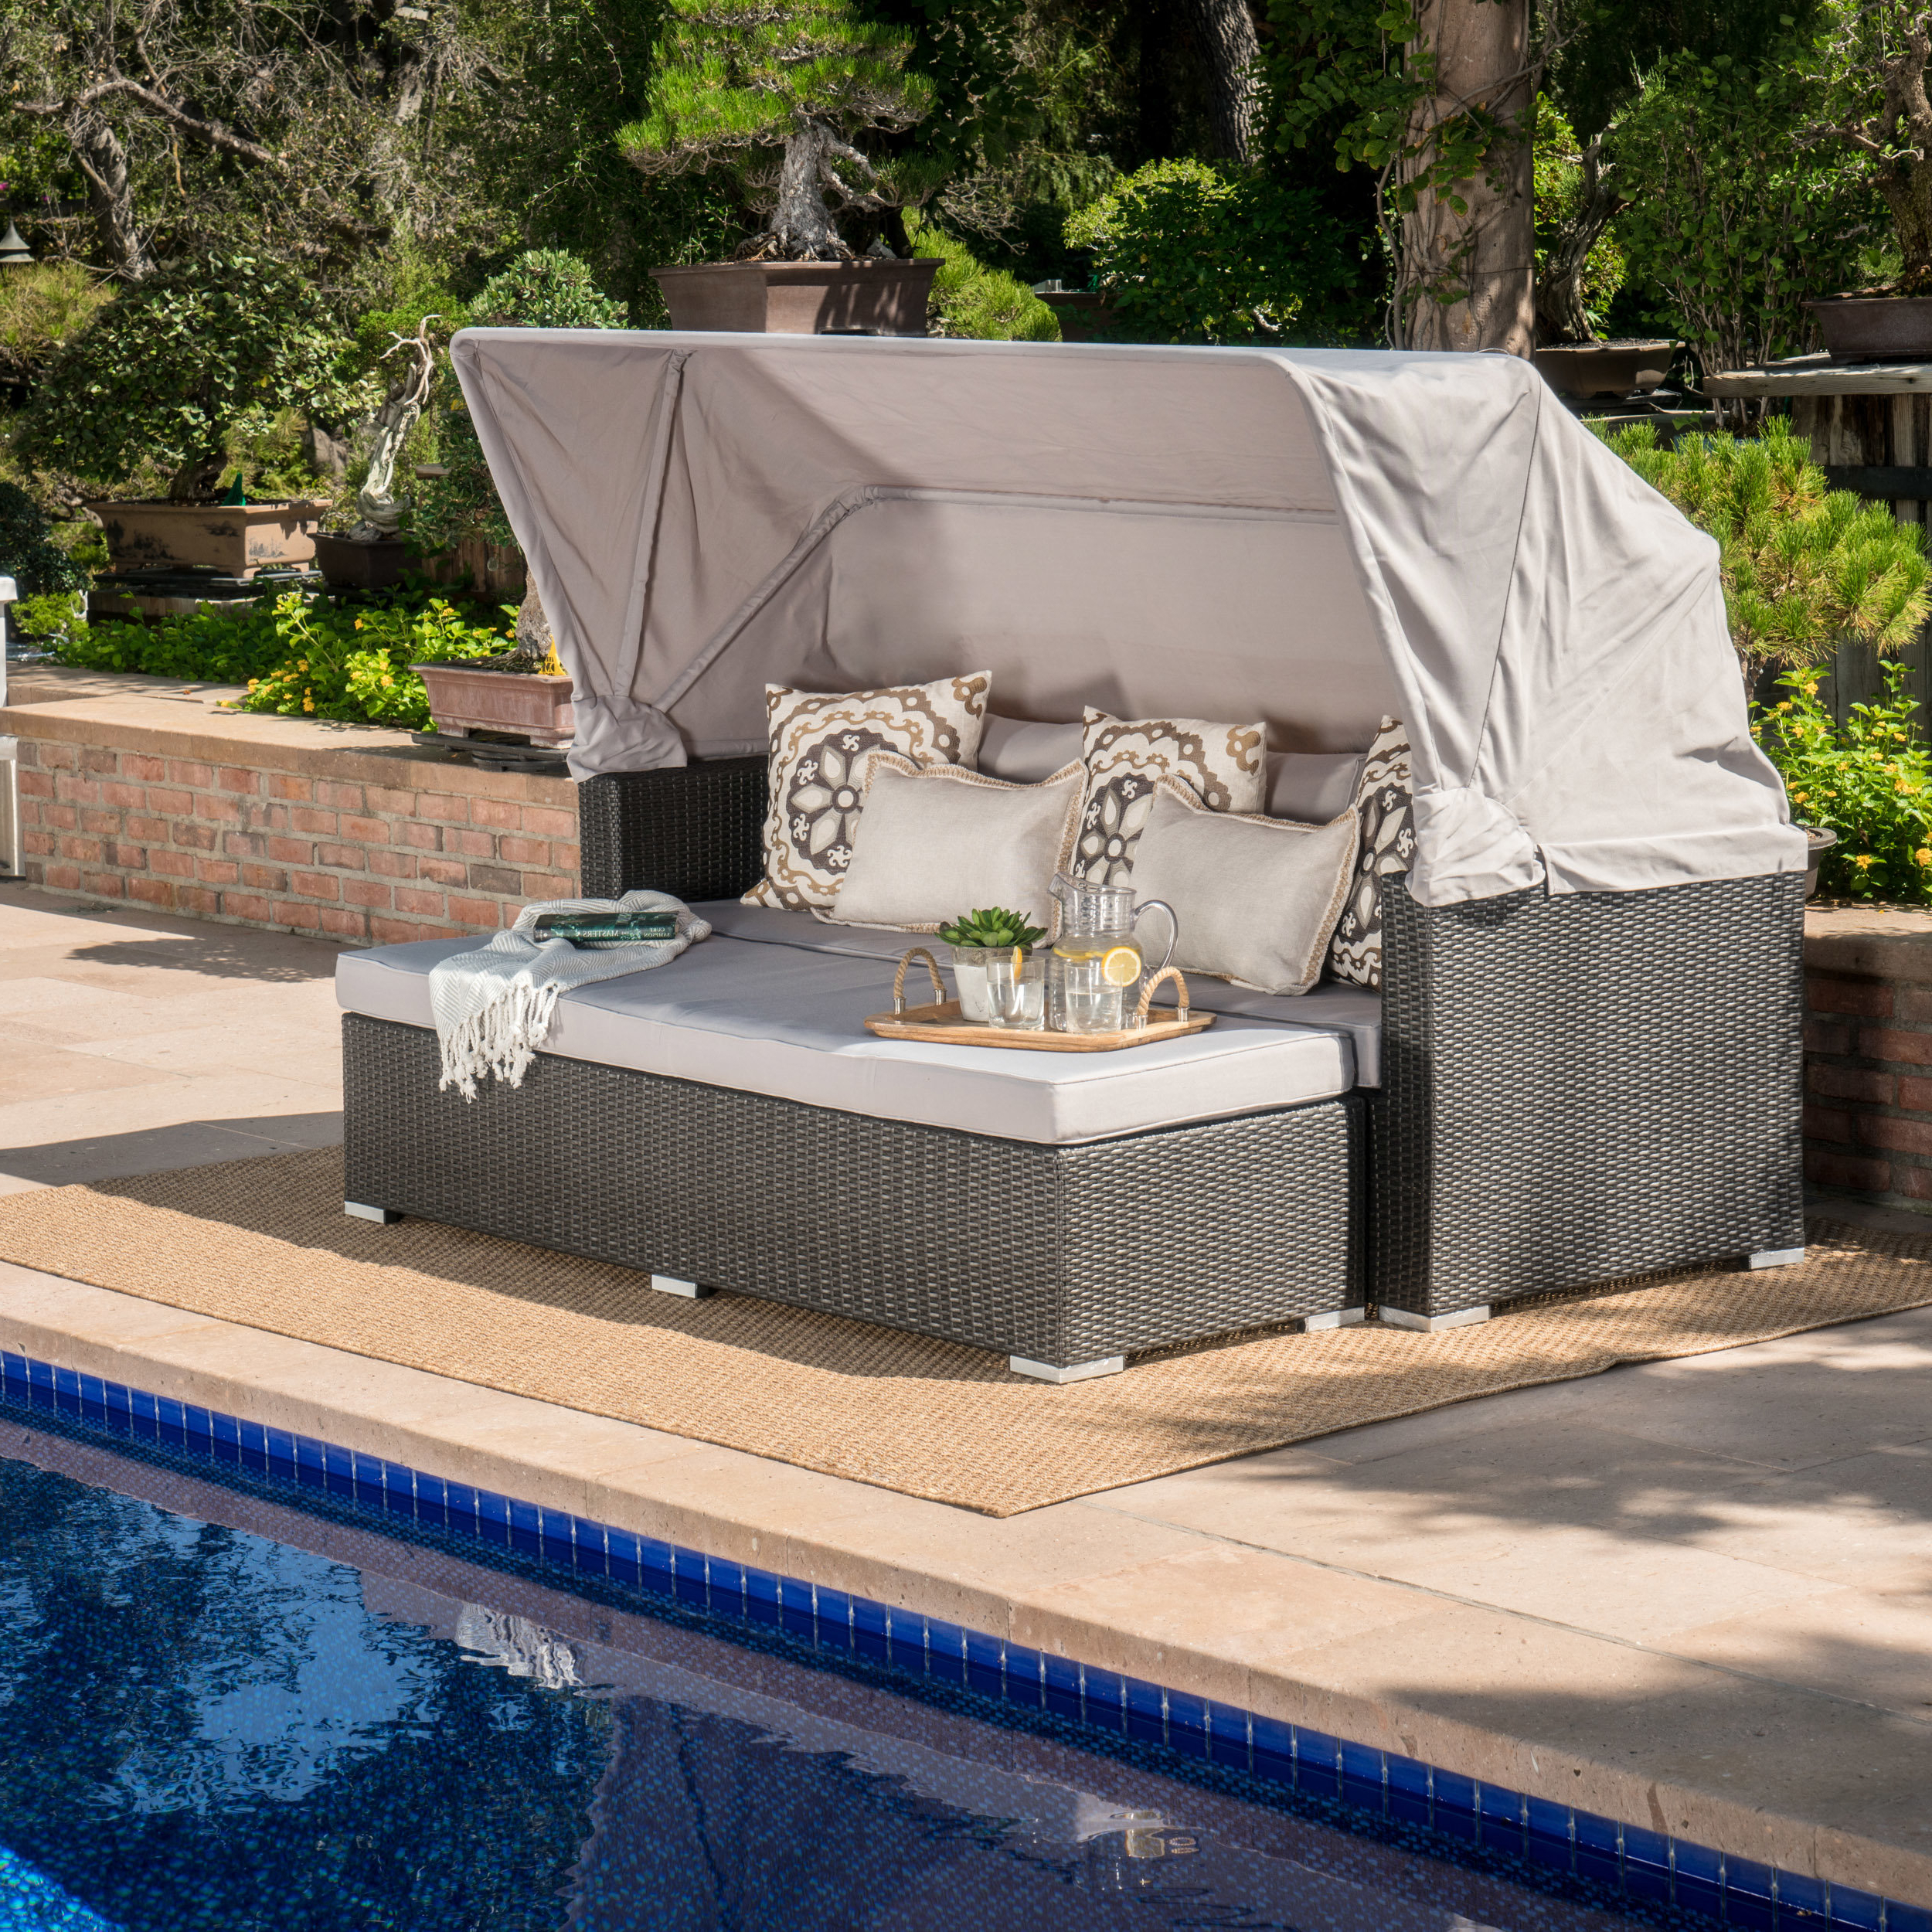 Lammers Outdoor Wicker Daybed With Cushions Regarding Well Known Hatley Patio Daybeds With Cushions (View 20 of 20)